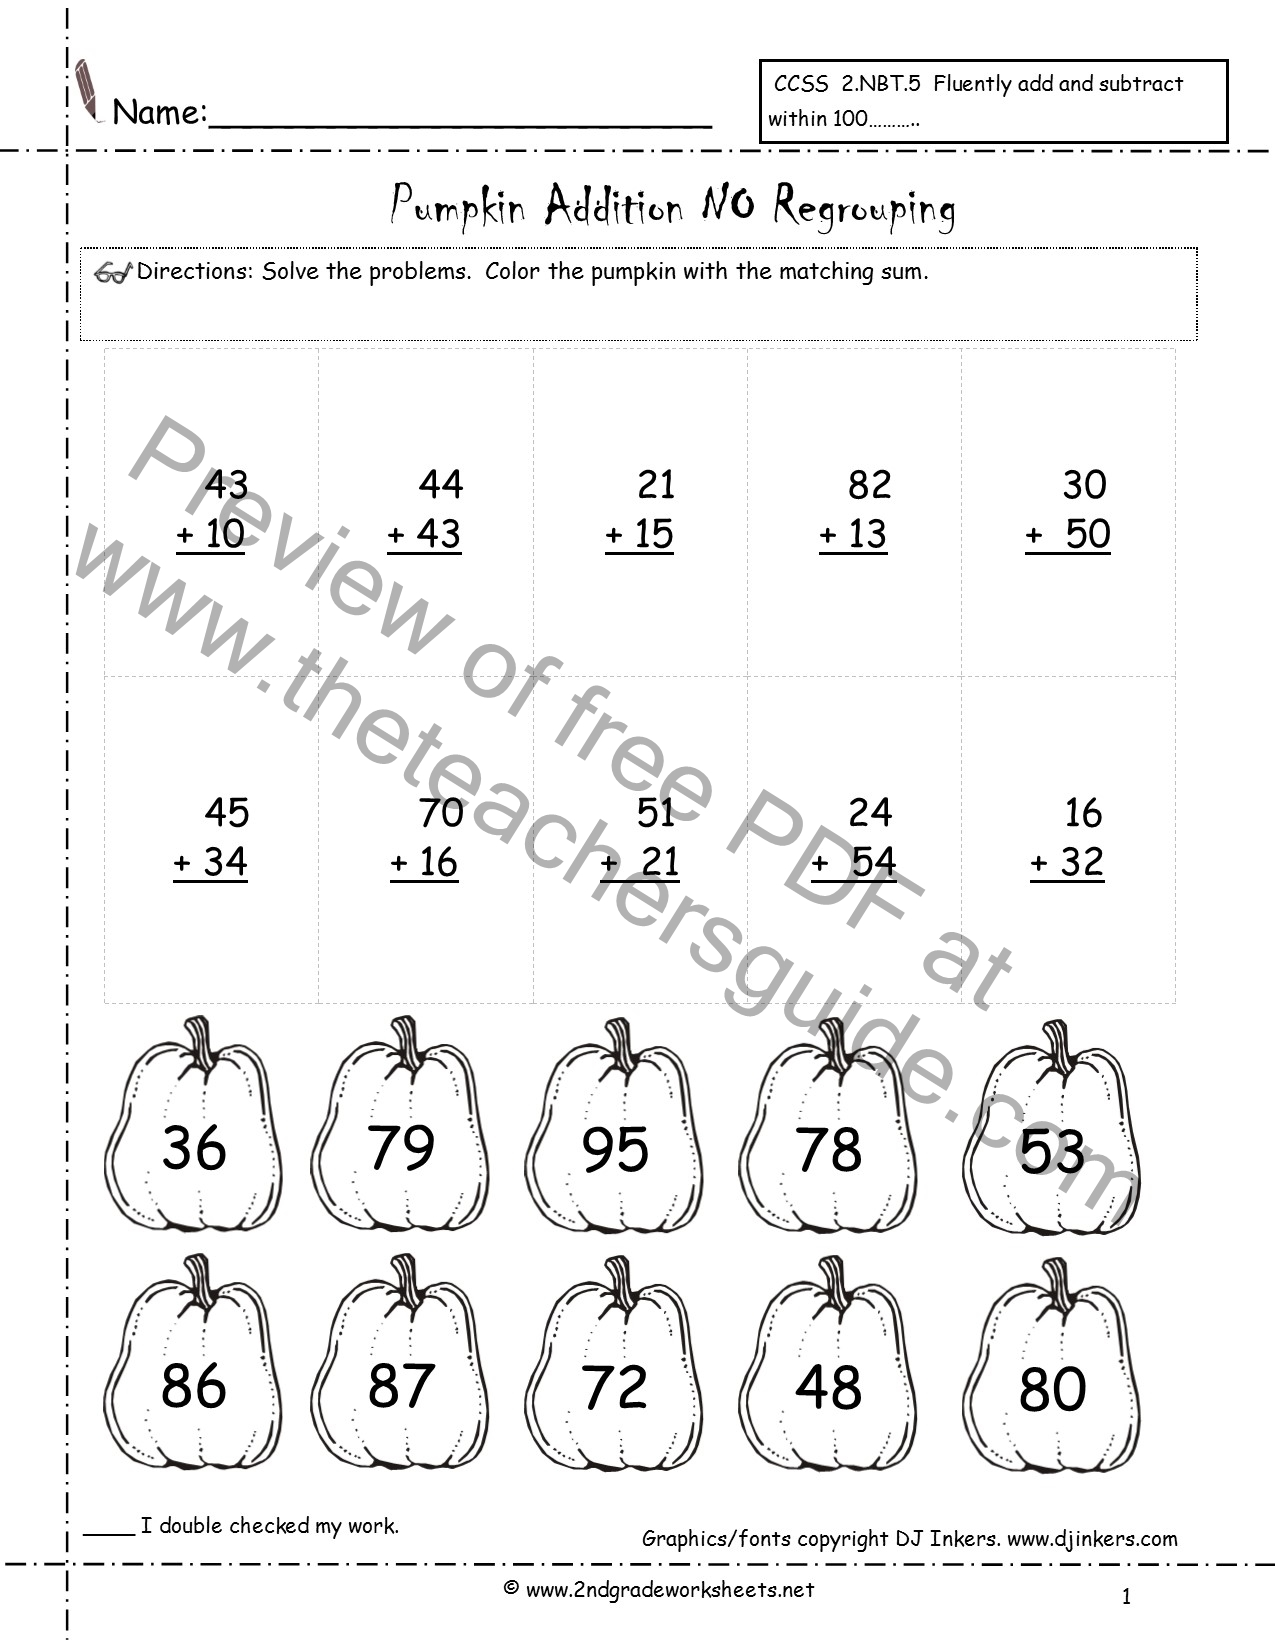 worksheet Adding With Regrouping addition with no regrouping lessons tes teach halloween printouts from the teacher39